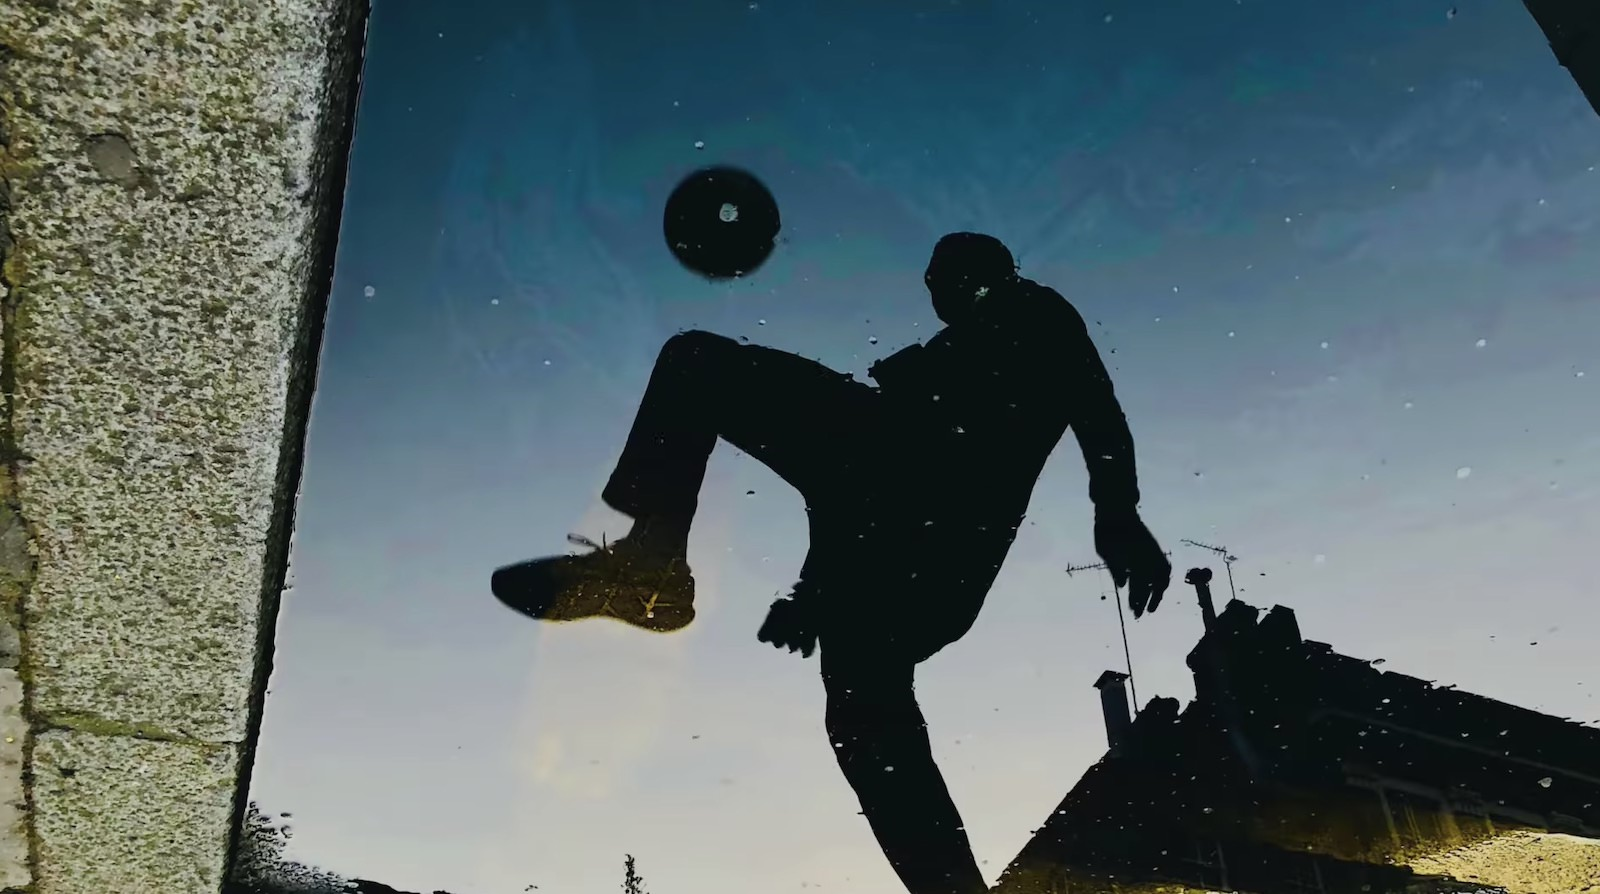 How to shoot soccer on iphonex